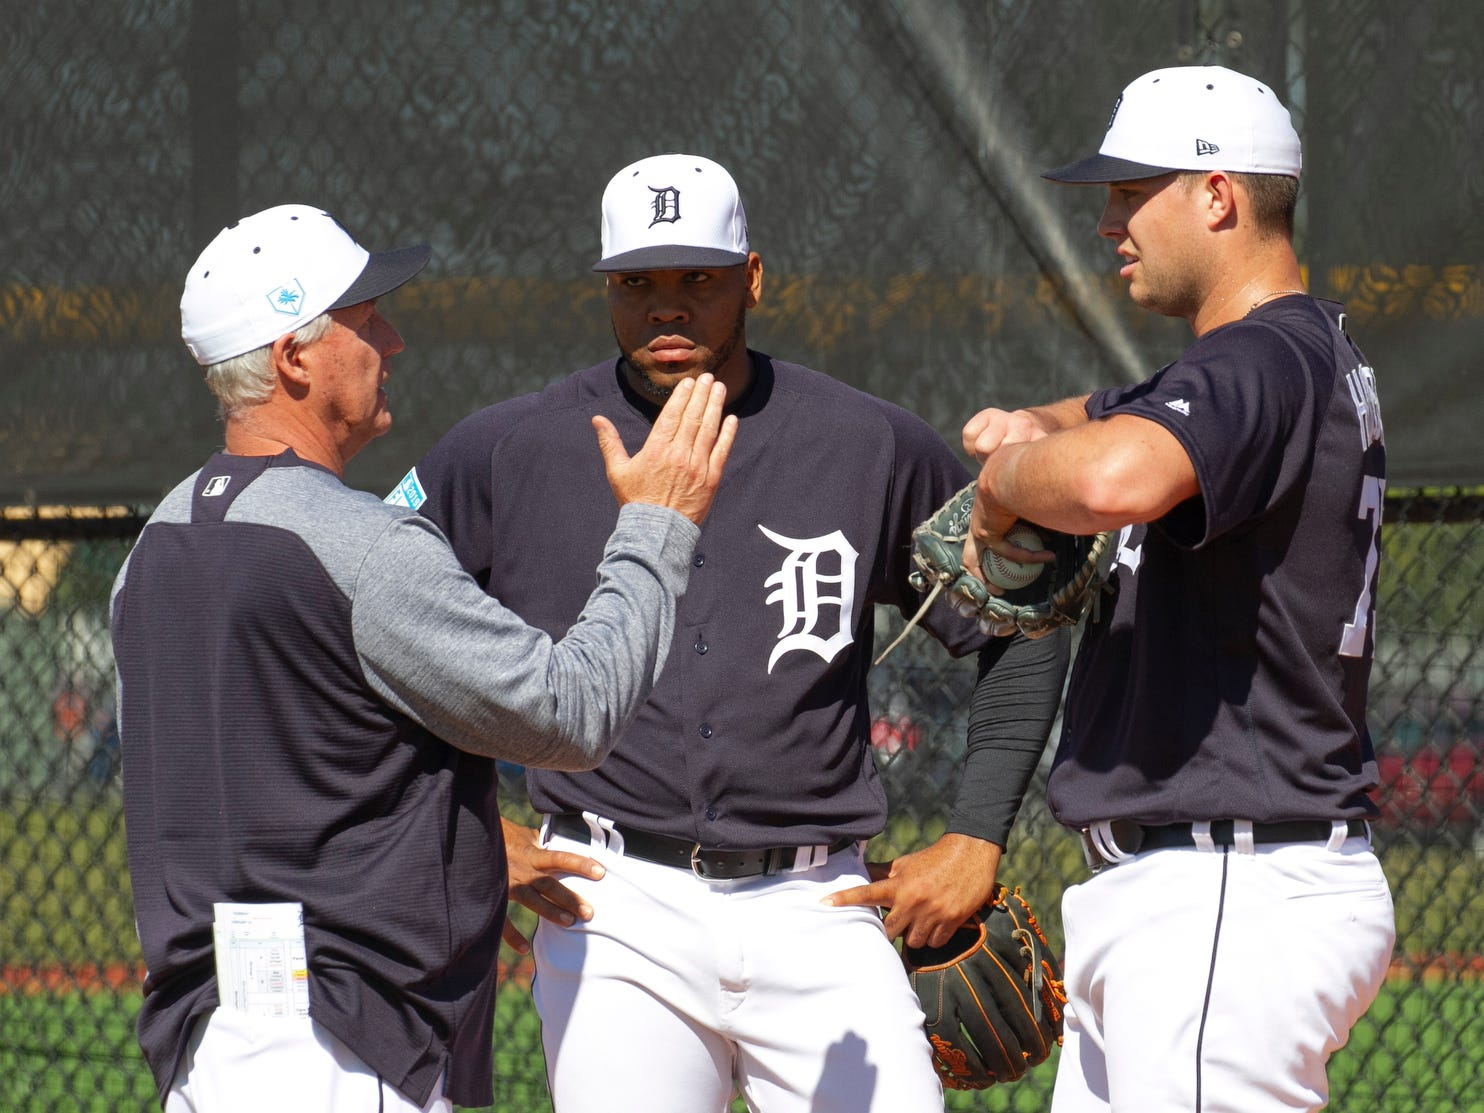 Detroit Tigers pitching coach Rick Anderson, left, speaks with pitchers Sandy Baez, center, and Zac Houston after their bullpen session.